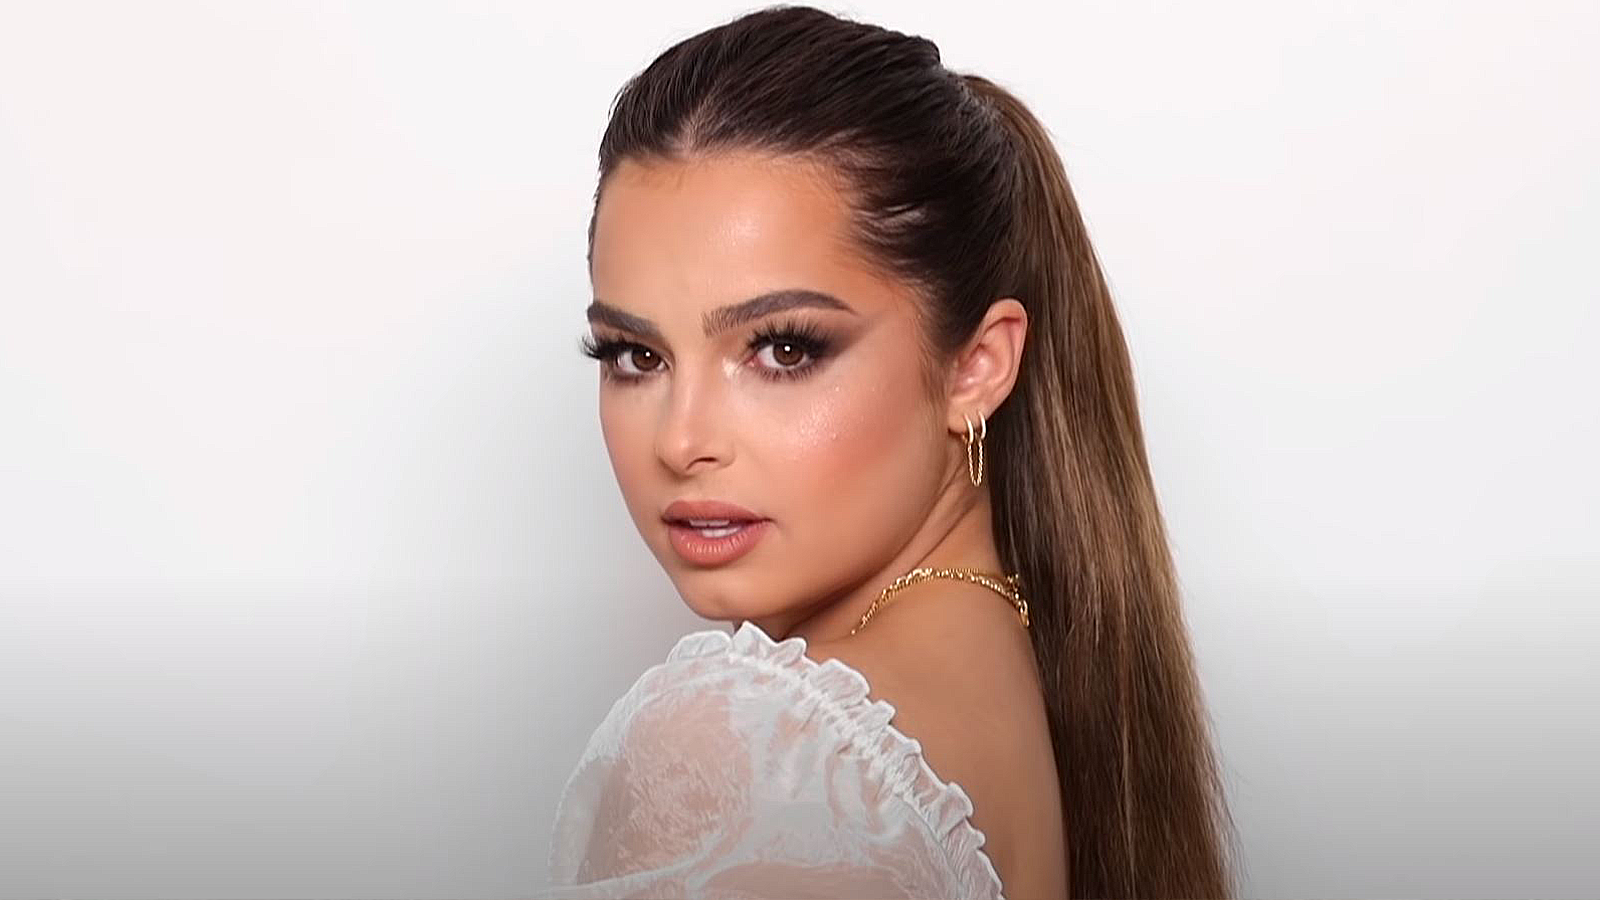 Addison Rae poses in makeup done by James Charles